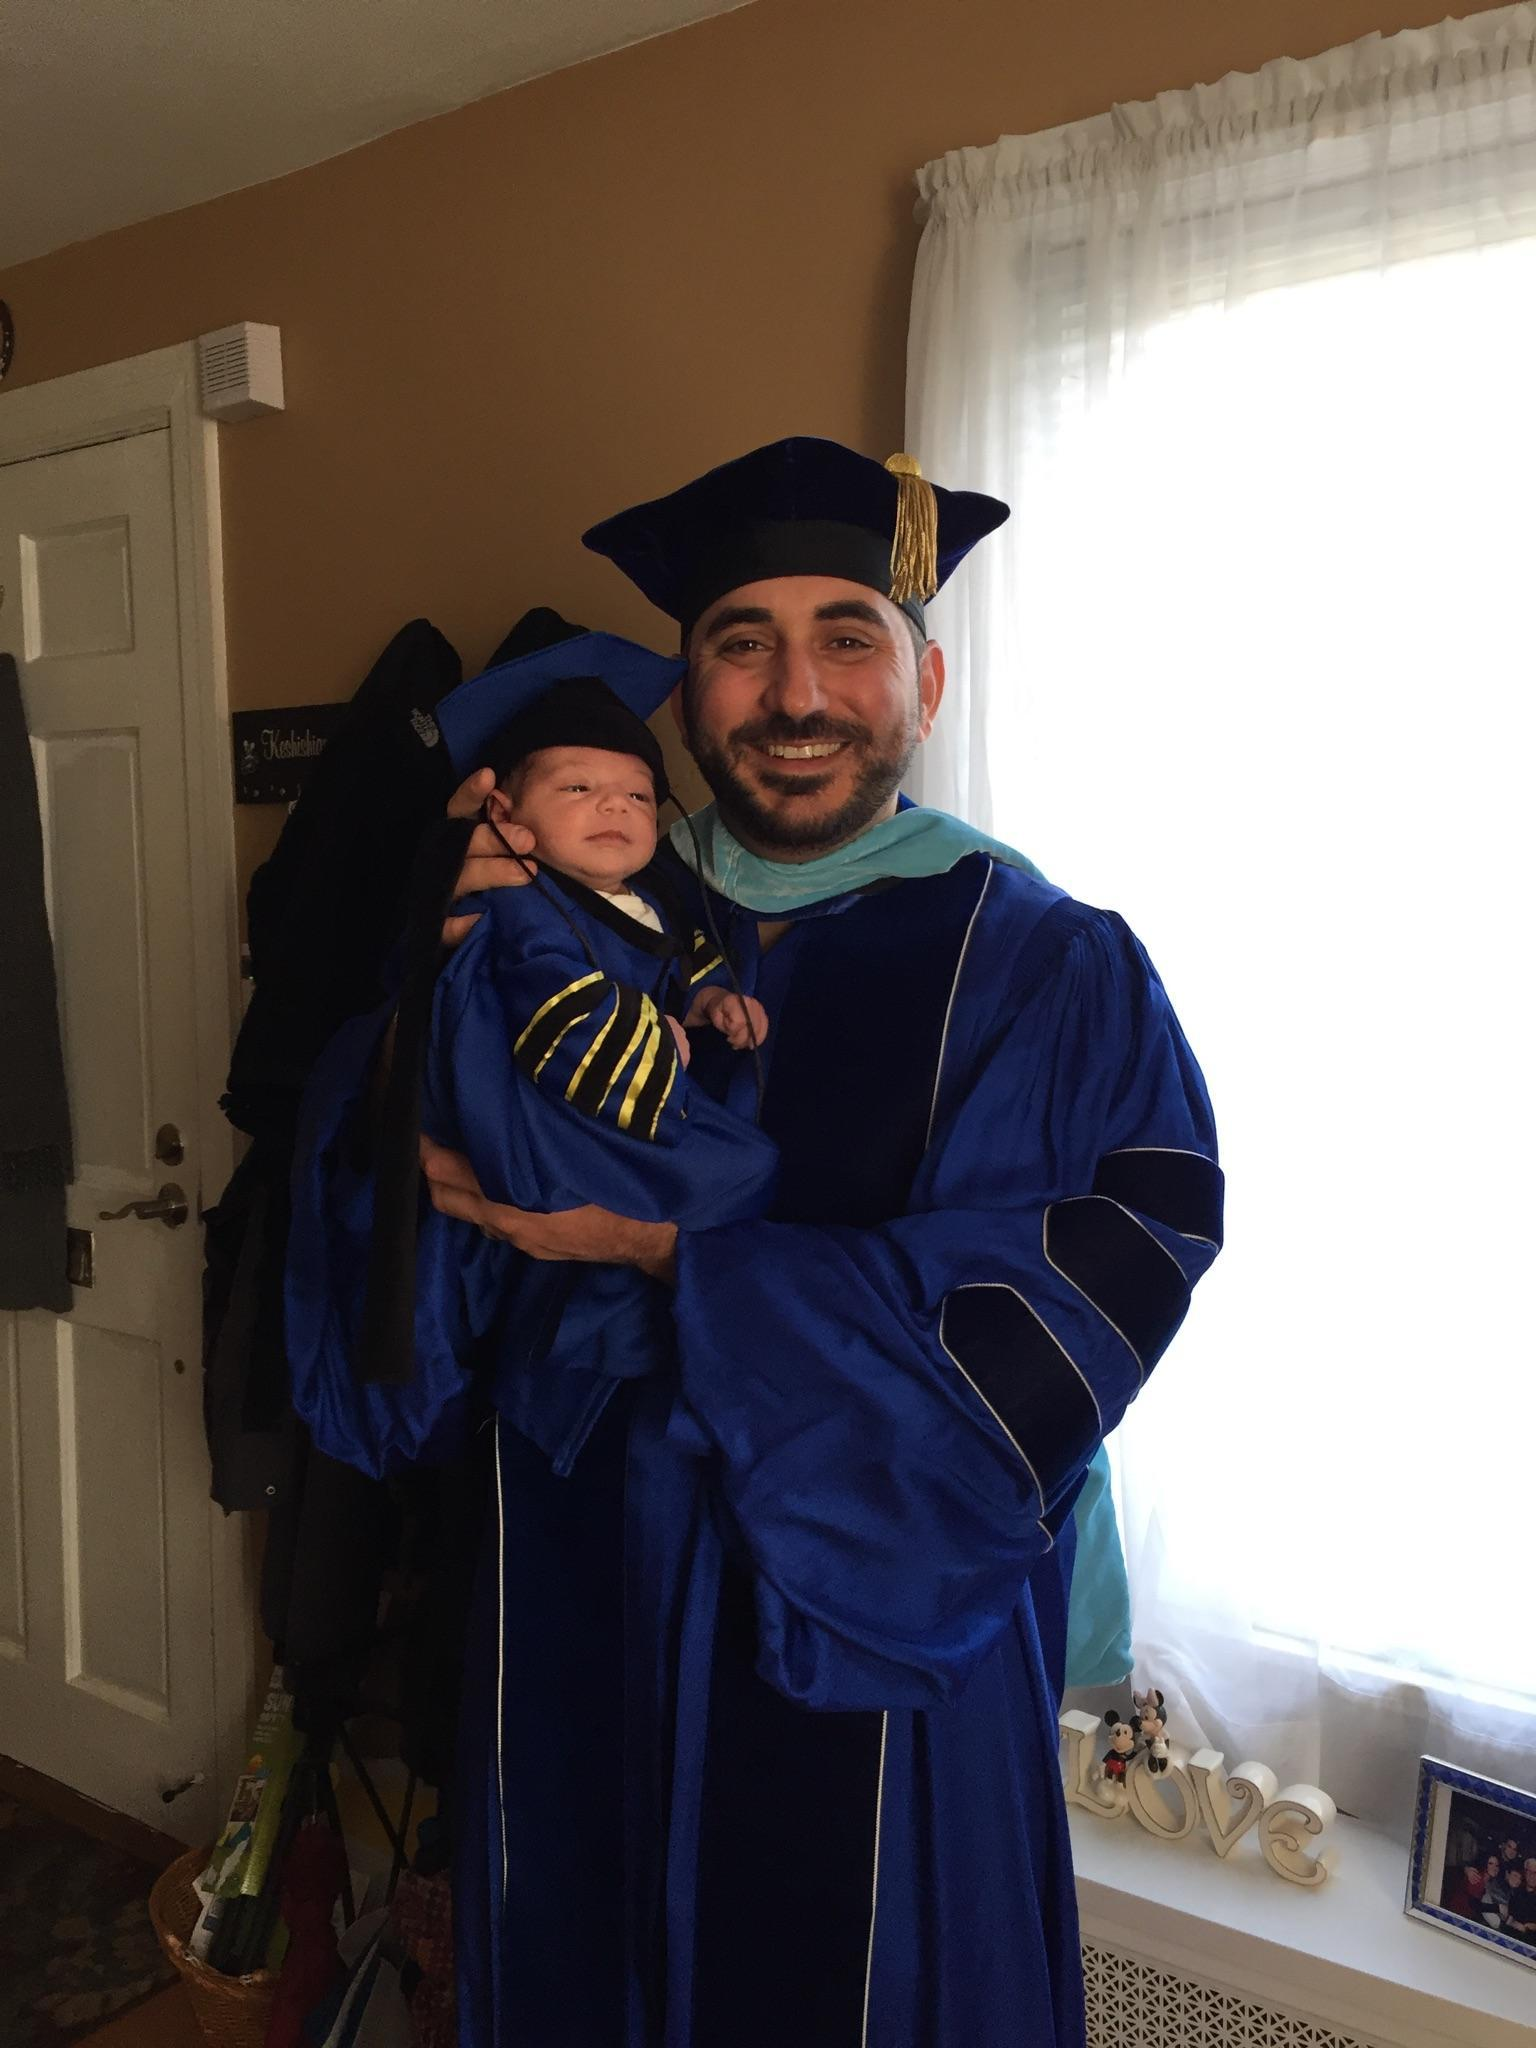 Picture in Doctorate Gown